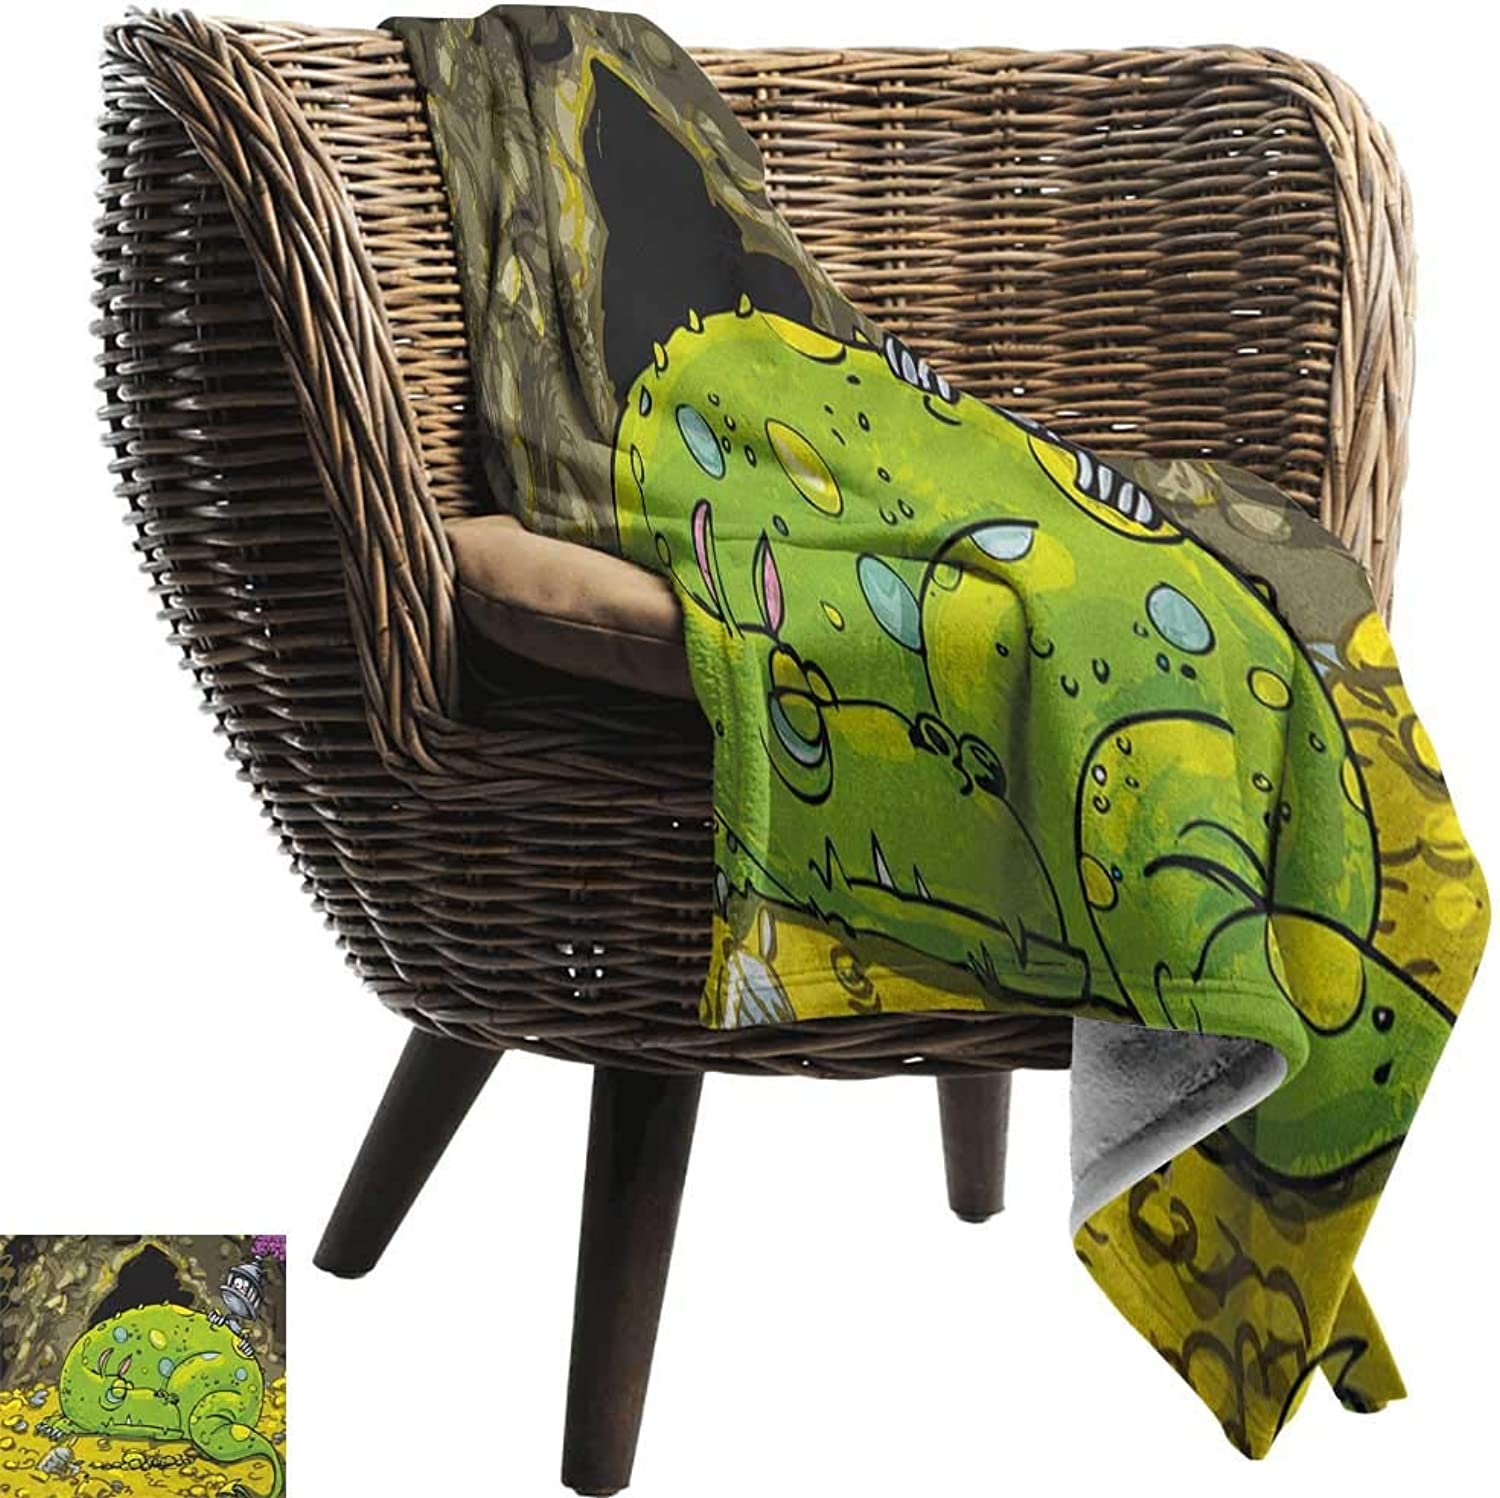 Sunnyhome Dragon,Super Soft Lightweight Blanket,Cute Creature Sleeping on A Pile of gold and Scared Knight Peering Over Kids Cartoon 60 x50 ,Super Soft and Comfortable,Suitable for Sofas,Chairs,beds